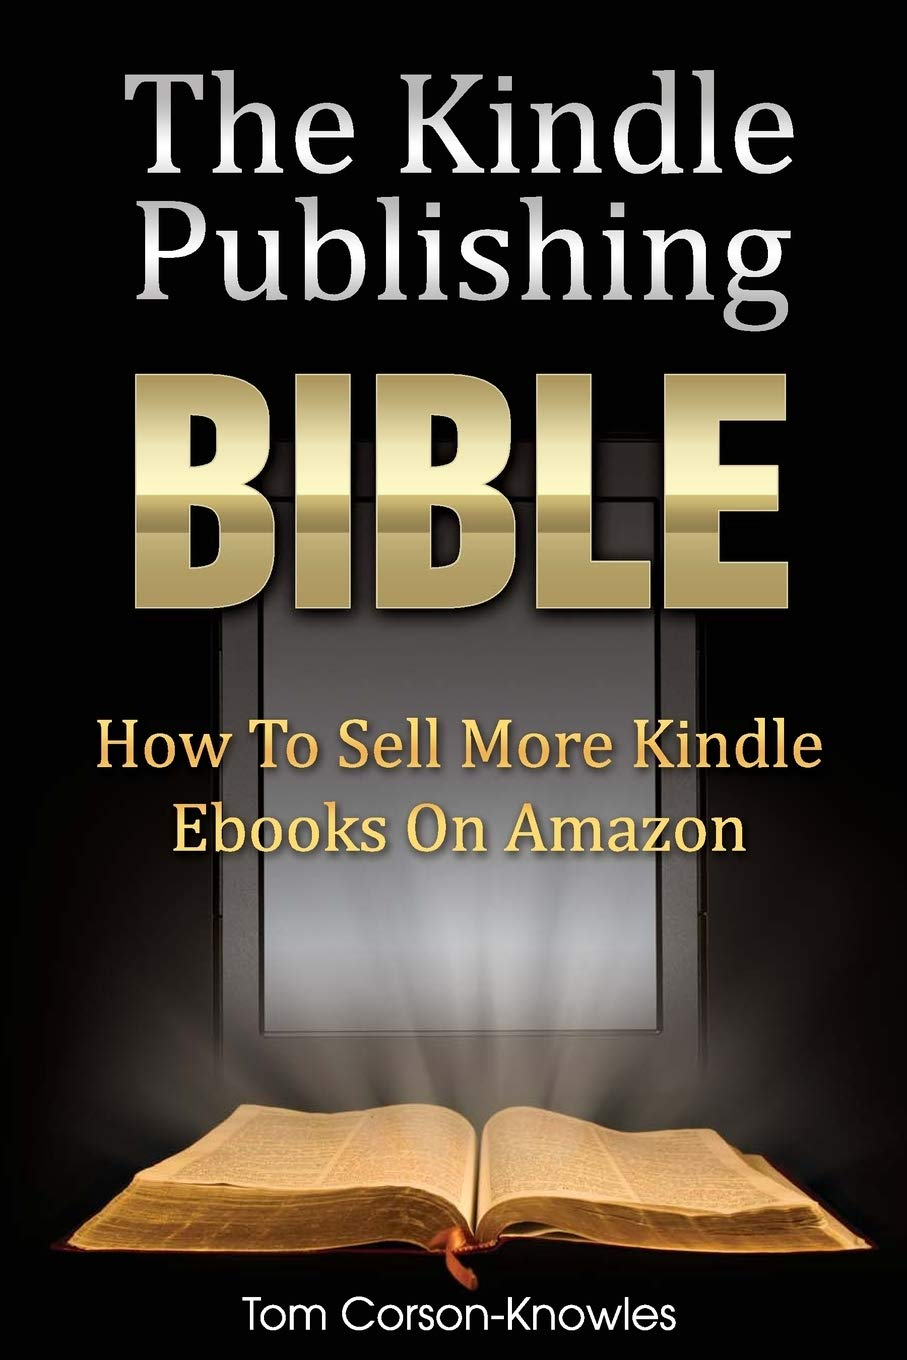 Image for The Kindle Publishing Bible: How To Sell More Kindle Ebooks on Amazon (The Kindle Bible)